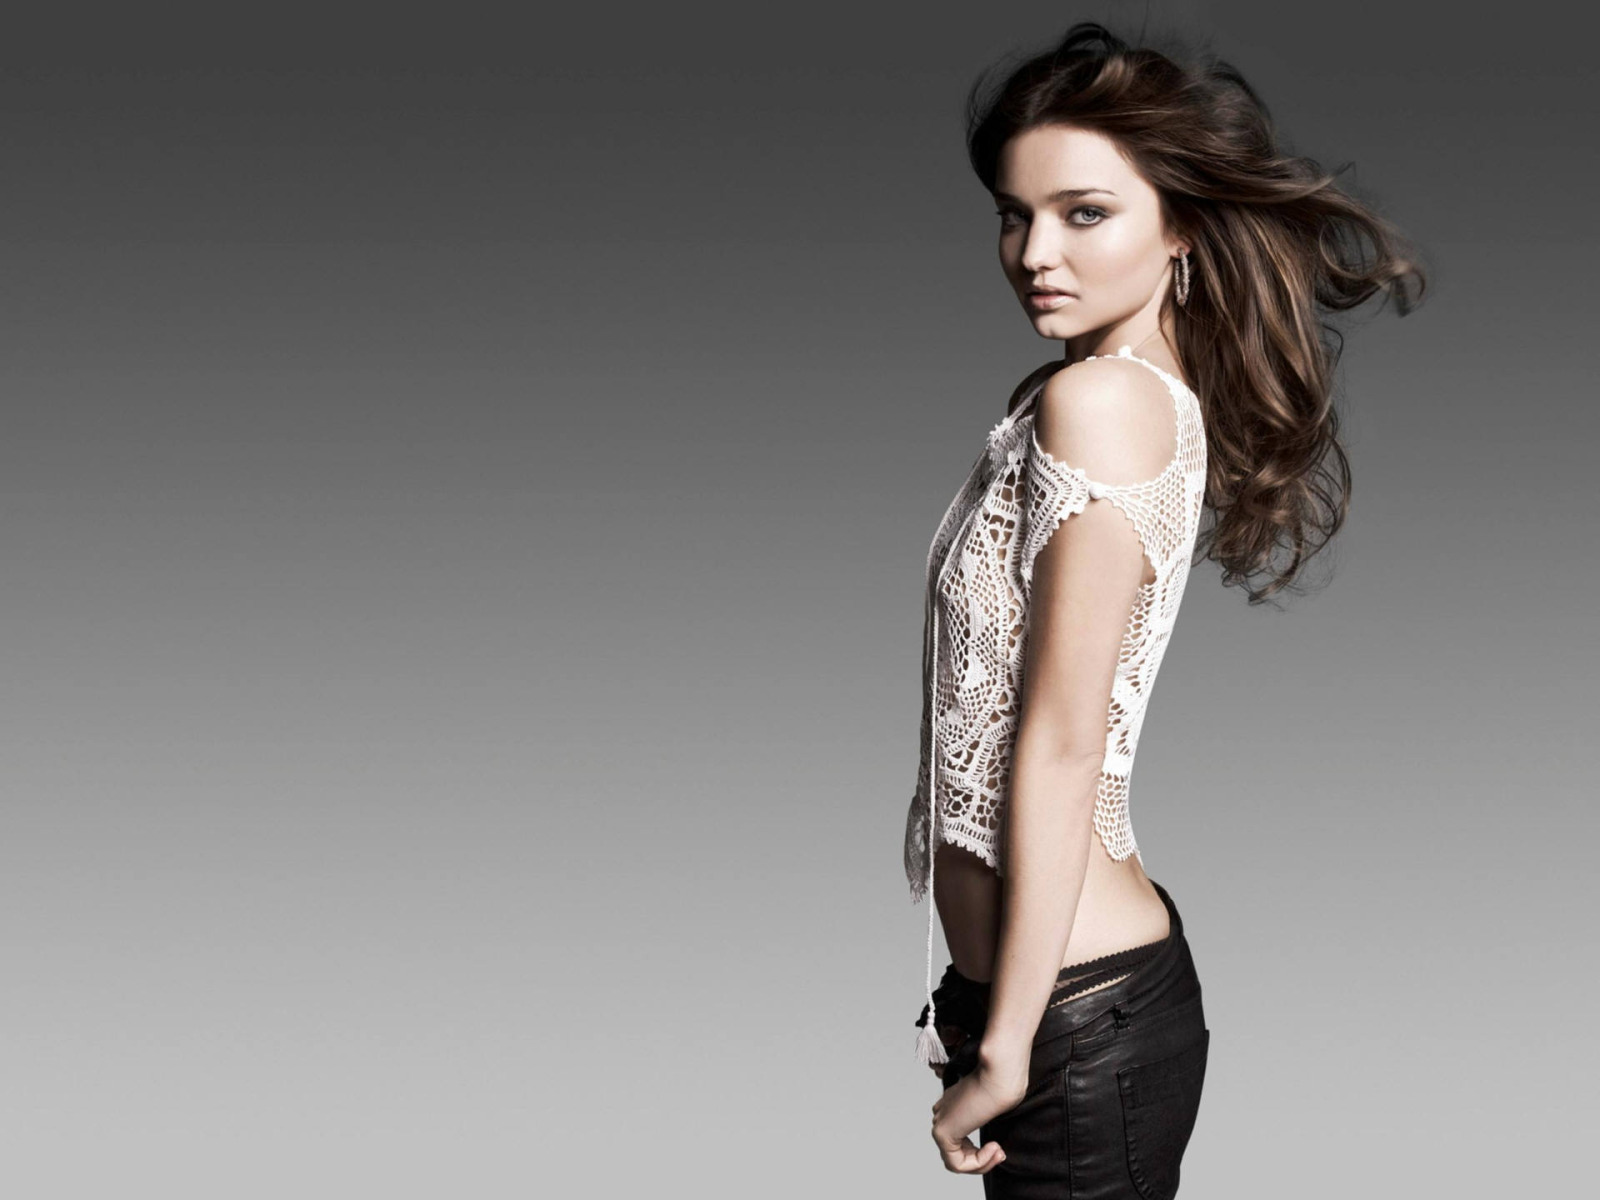 miranda kerr wallpaper stylish